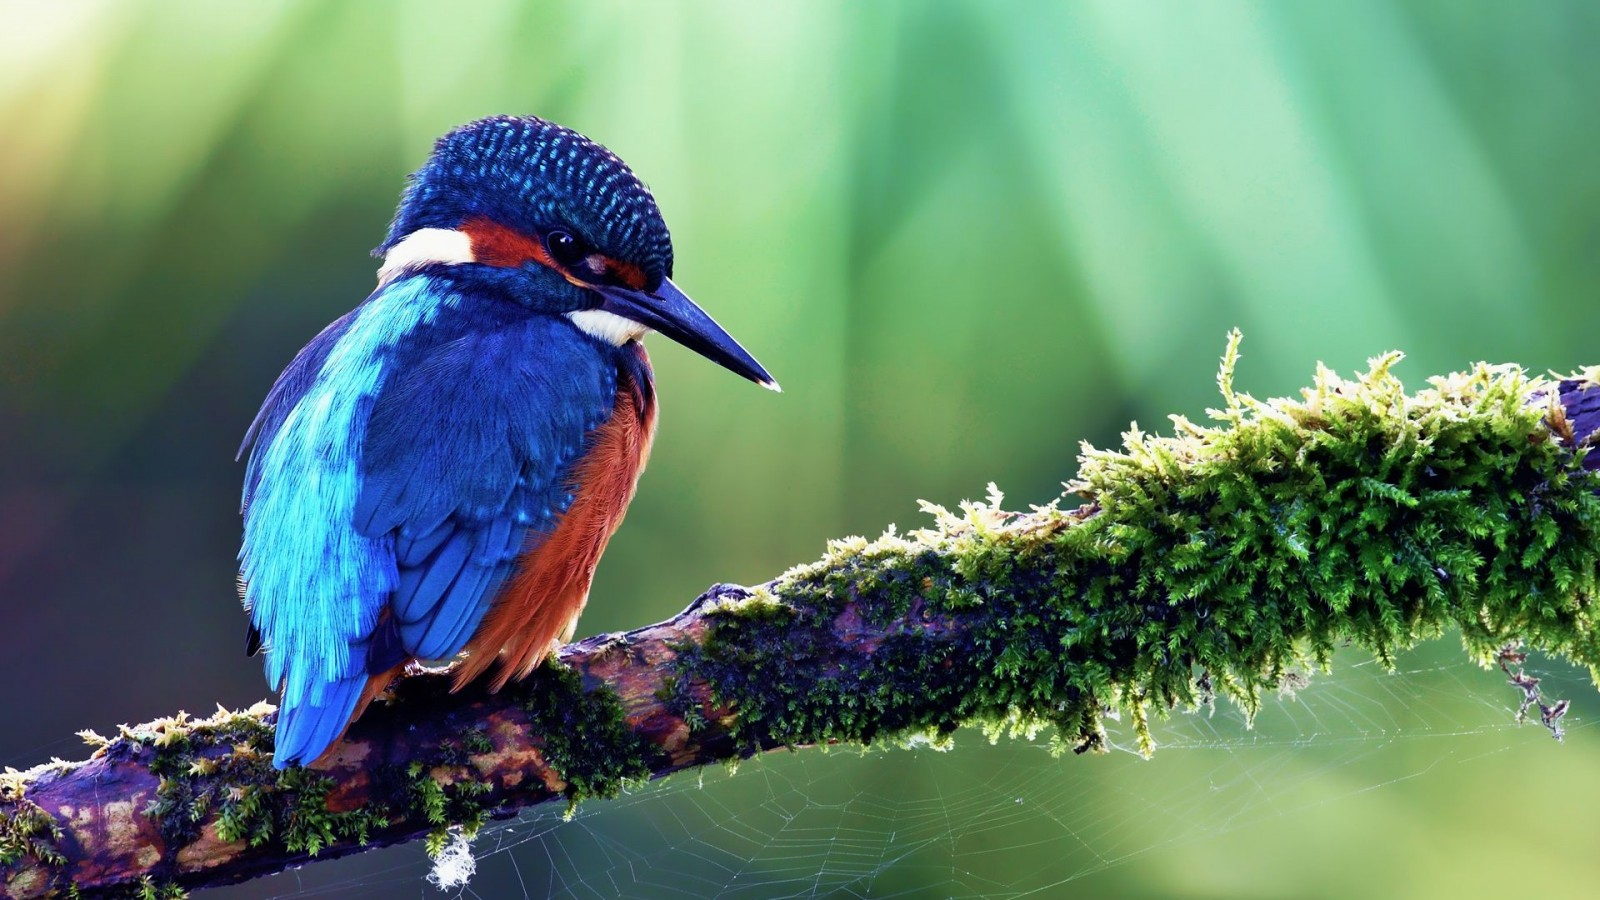 15 beautiful birds wallpaper collection hd edition stugon - Hd pics of nature with birds ...